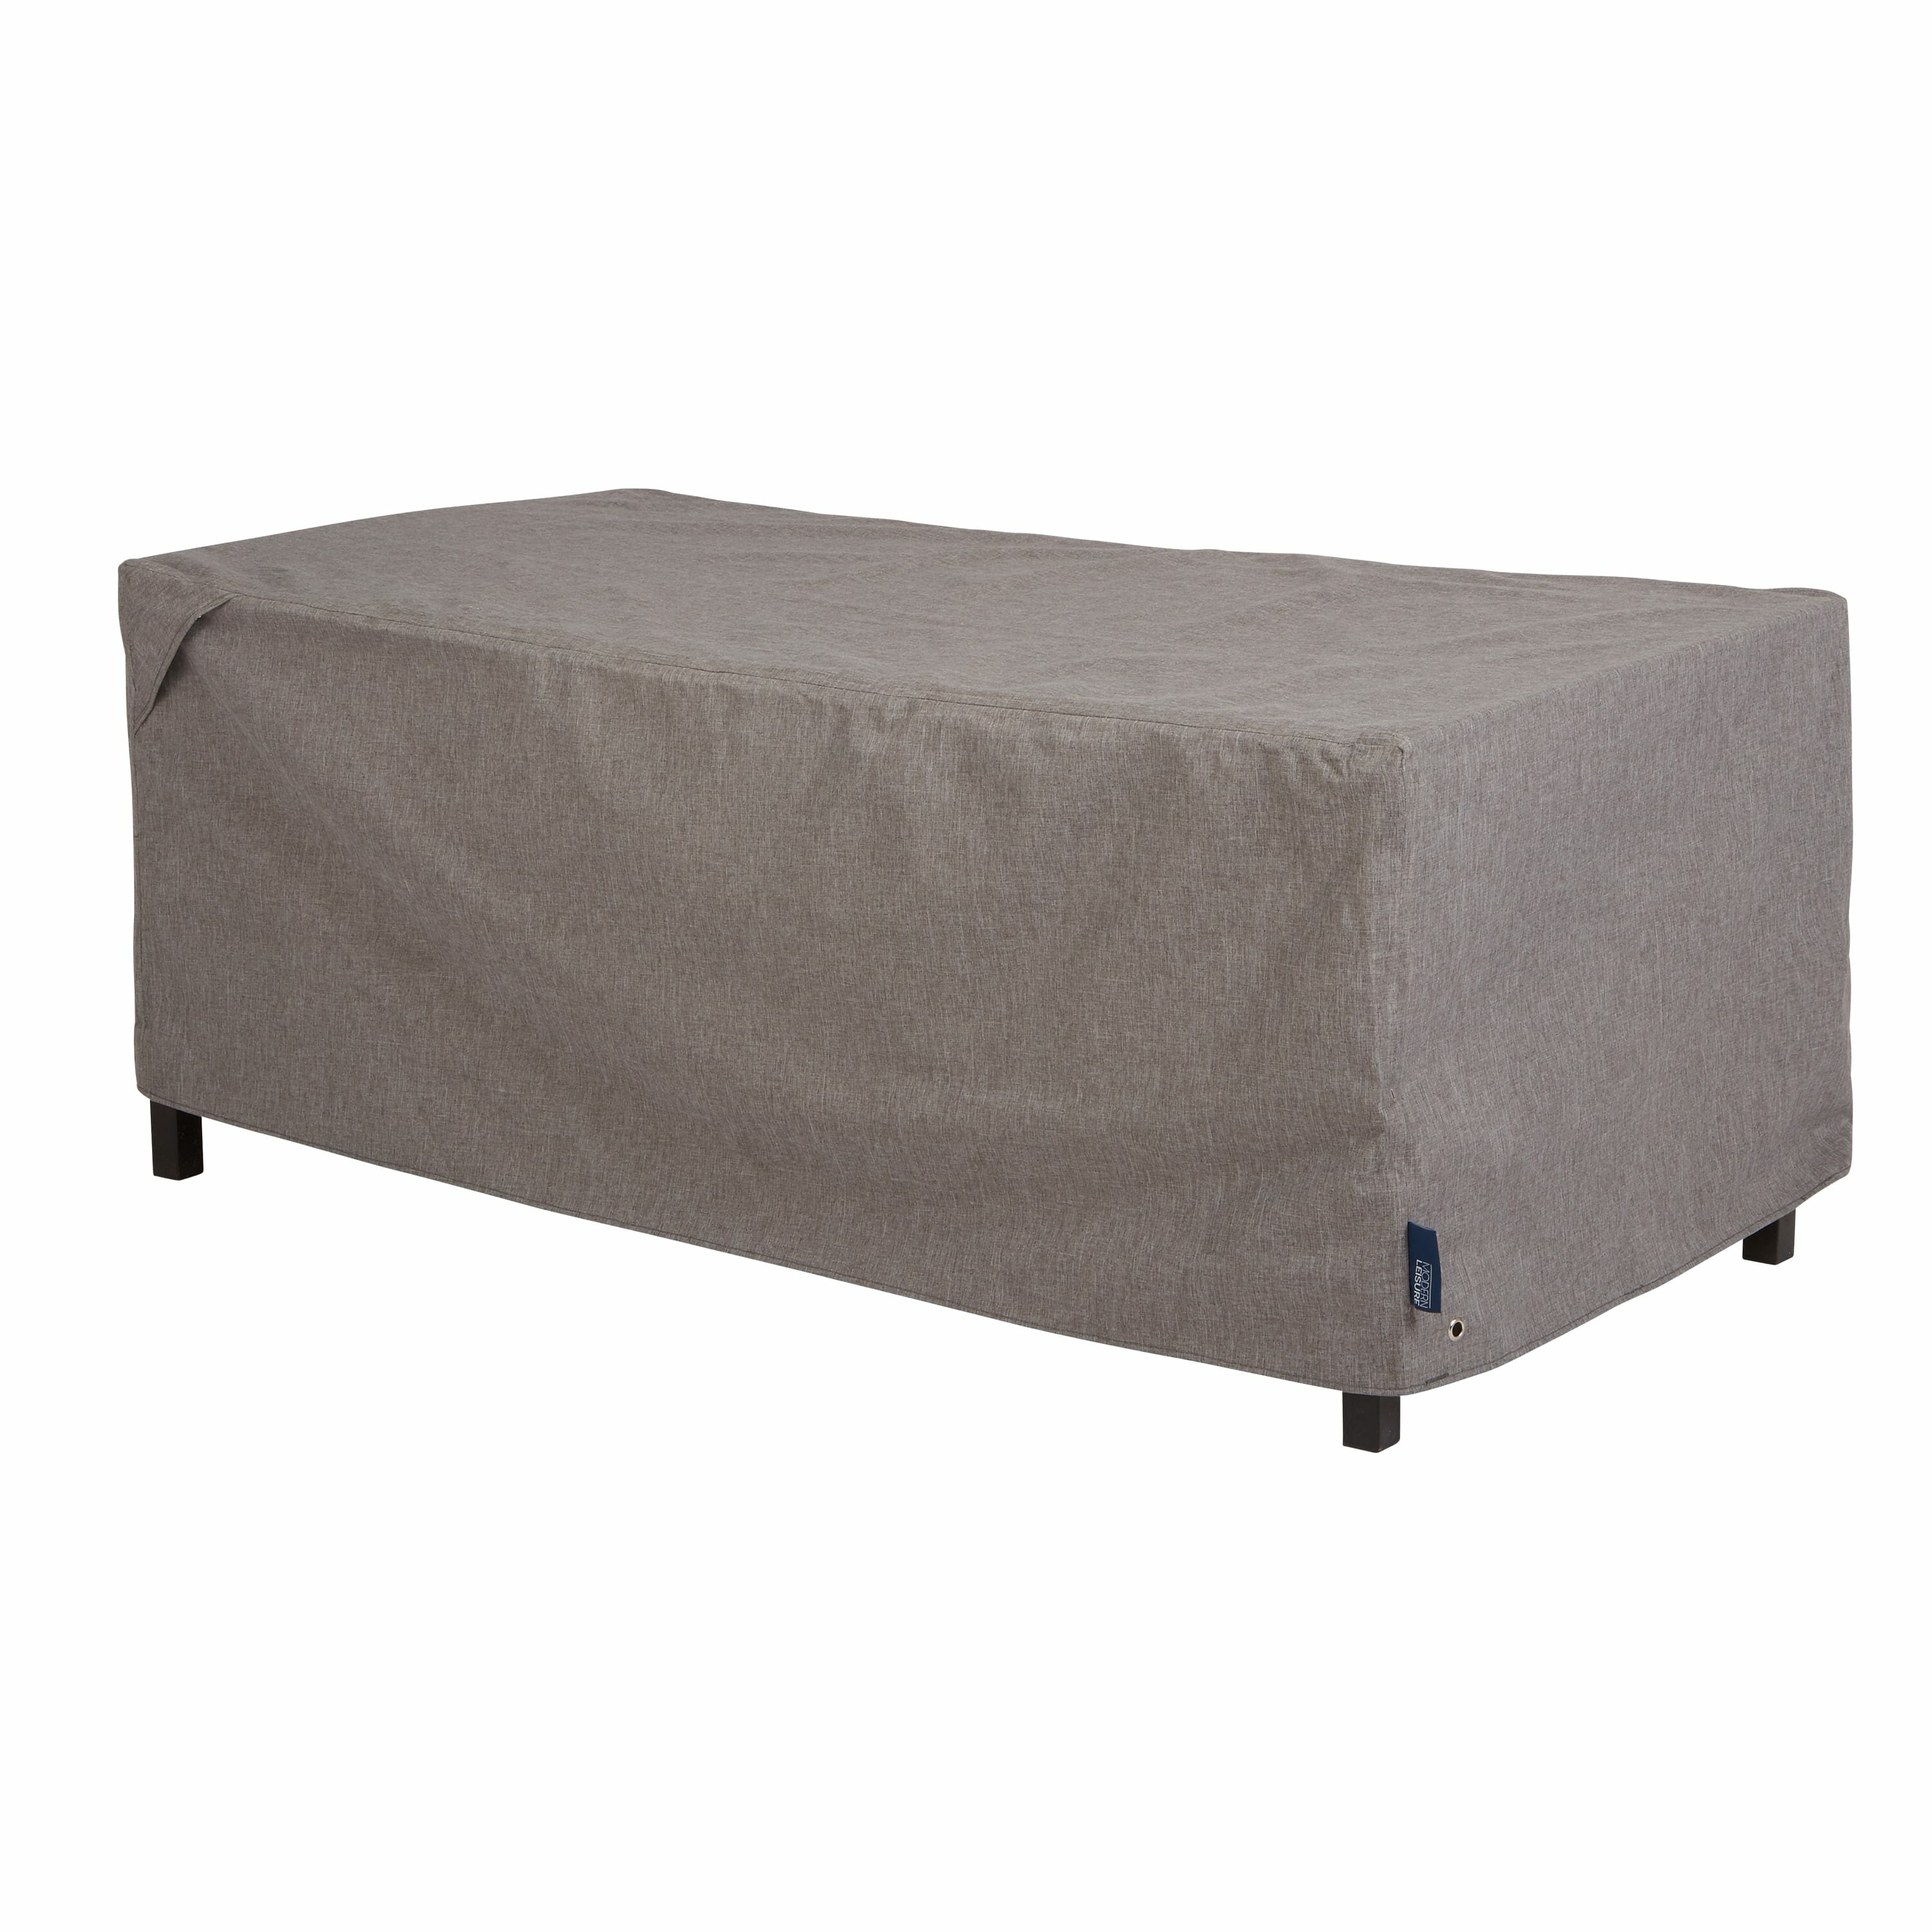 Modern Leisure Water Resistant Patio Table Cover With 3 Year Warrantys Wayfair